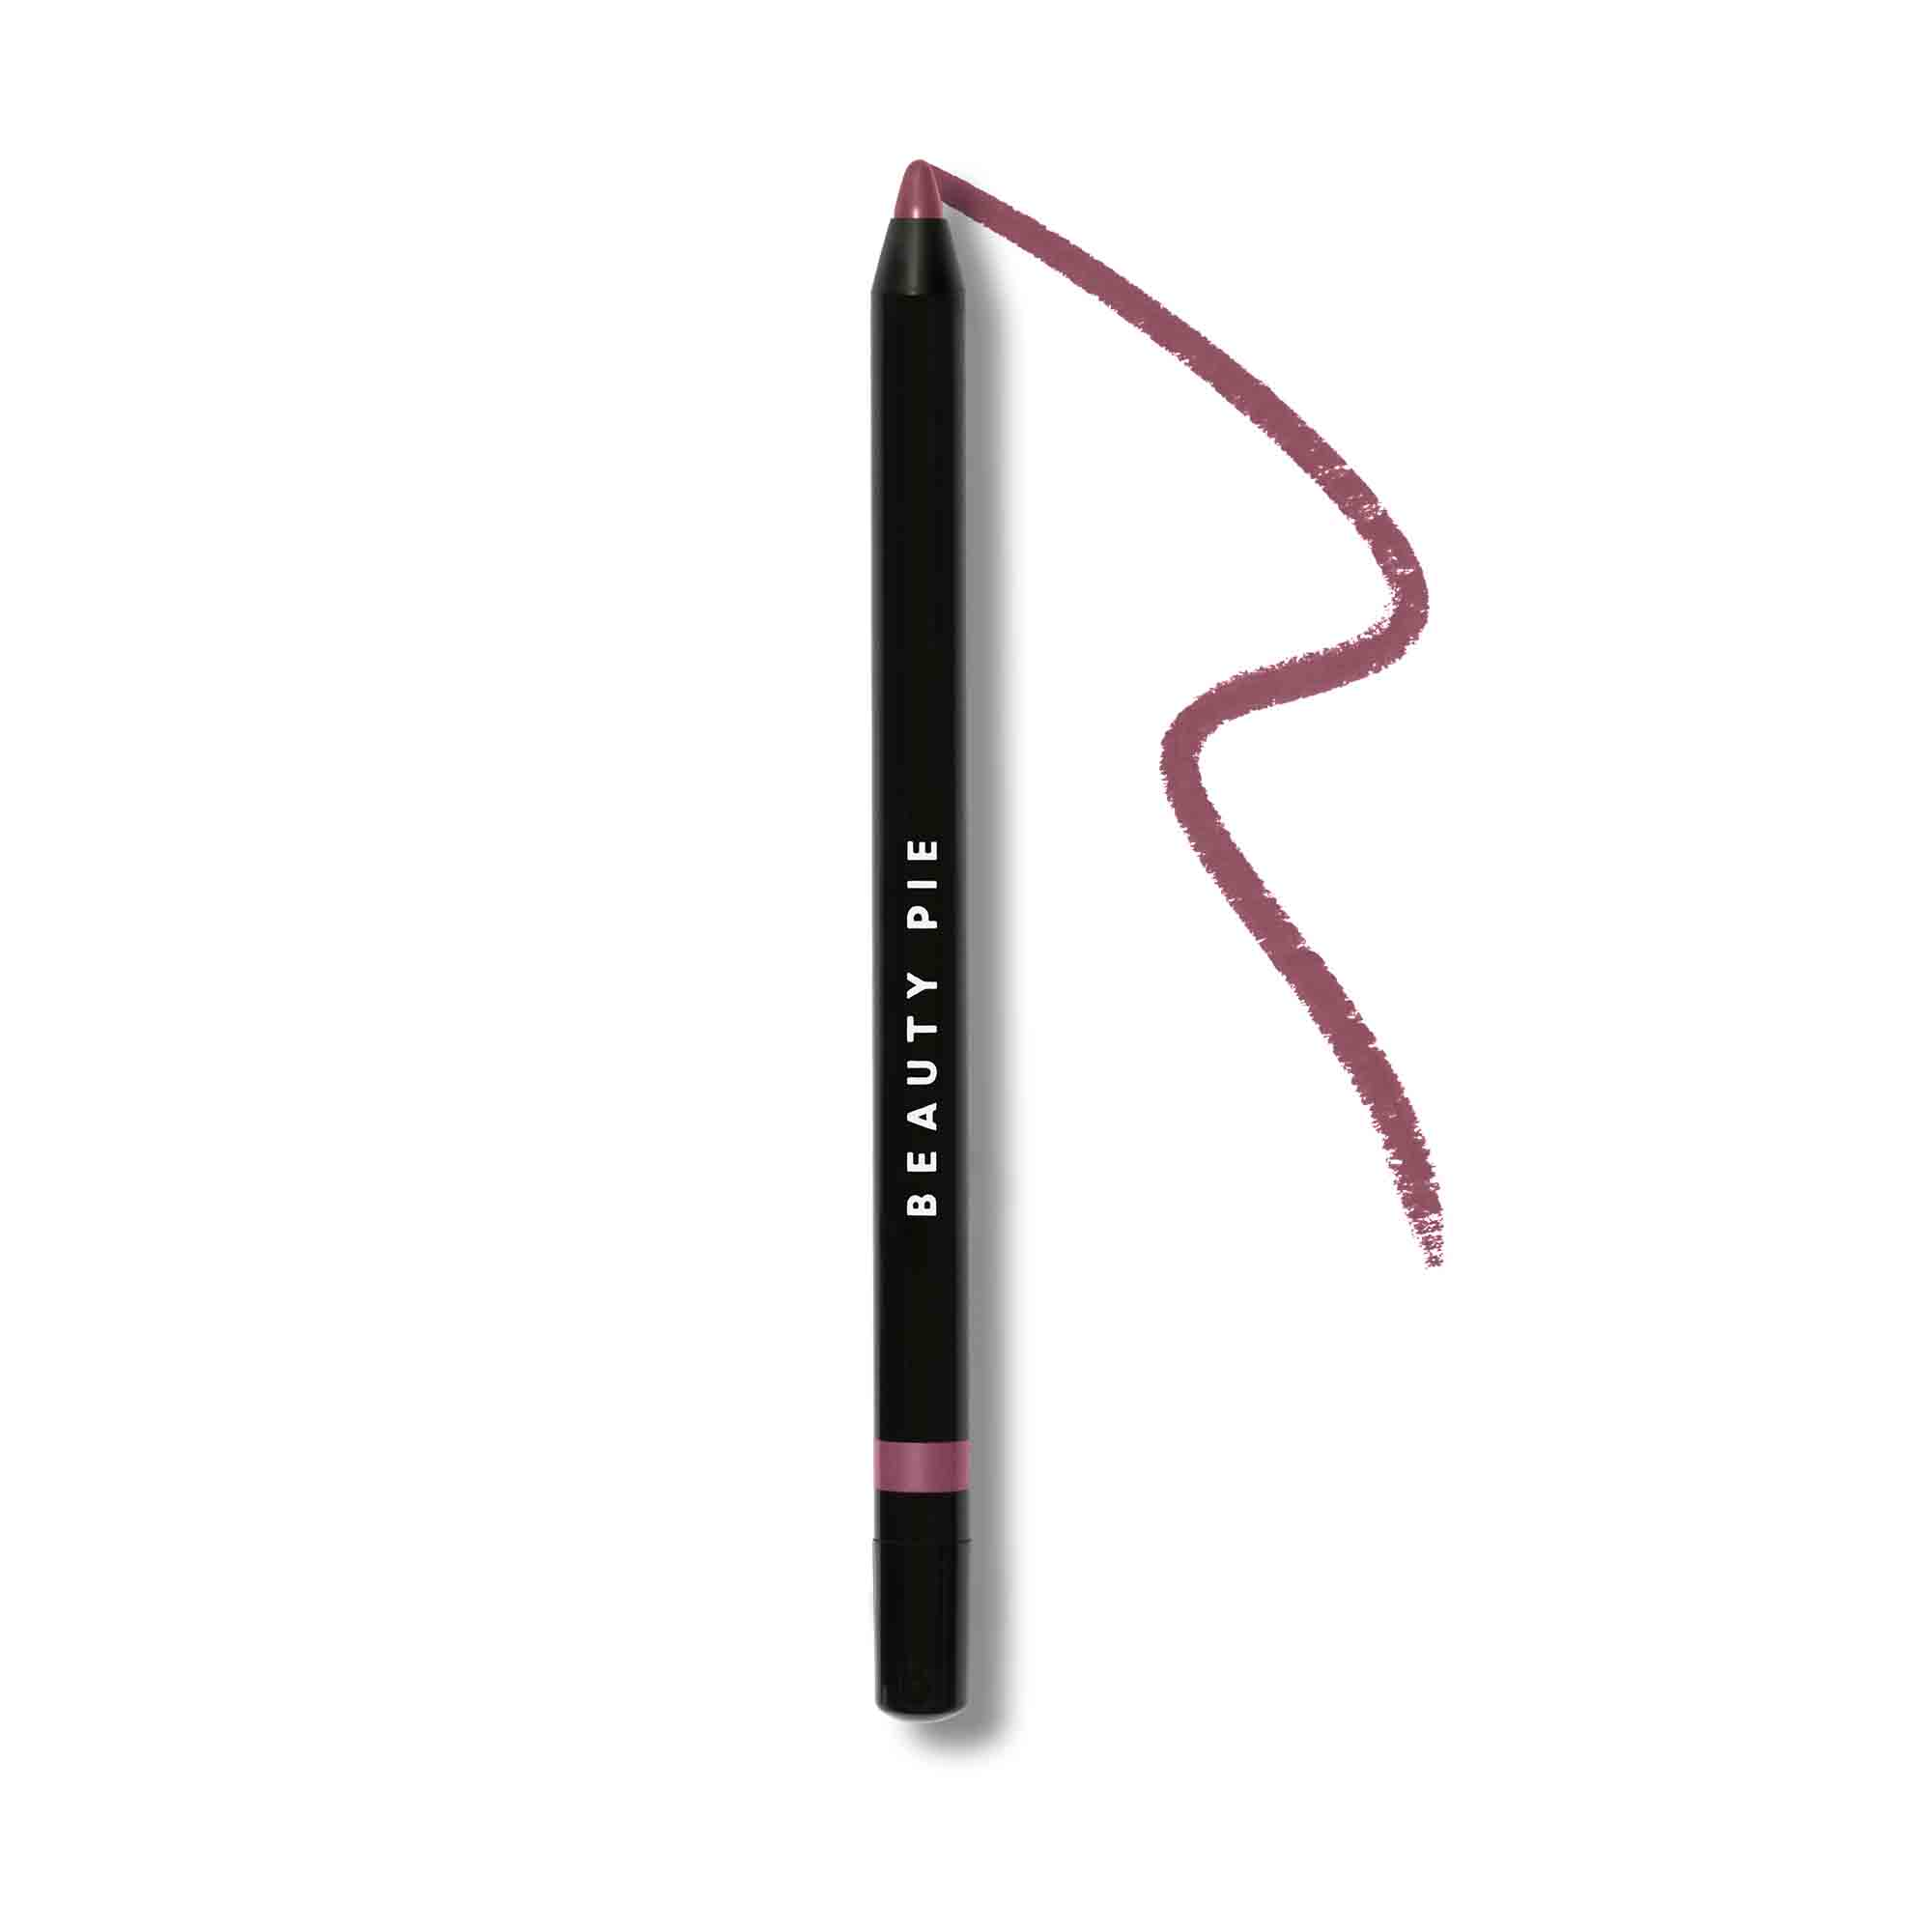 Wondergel Long Wear Lip Liner in Damzel at Beauty Pie US